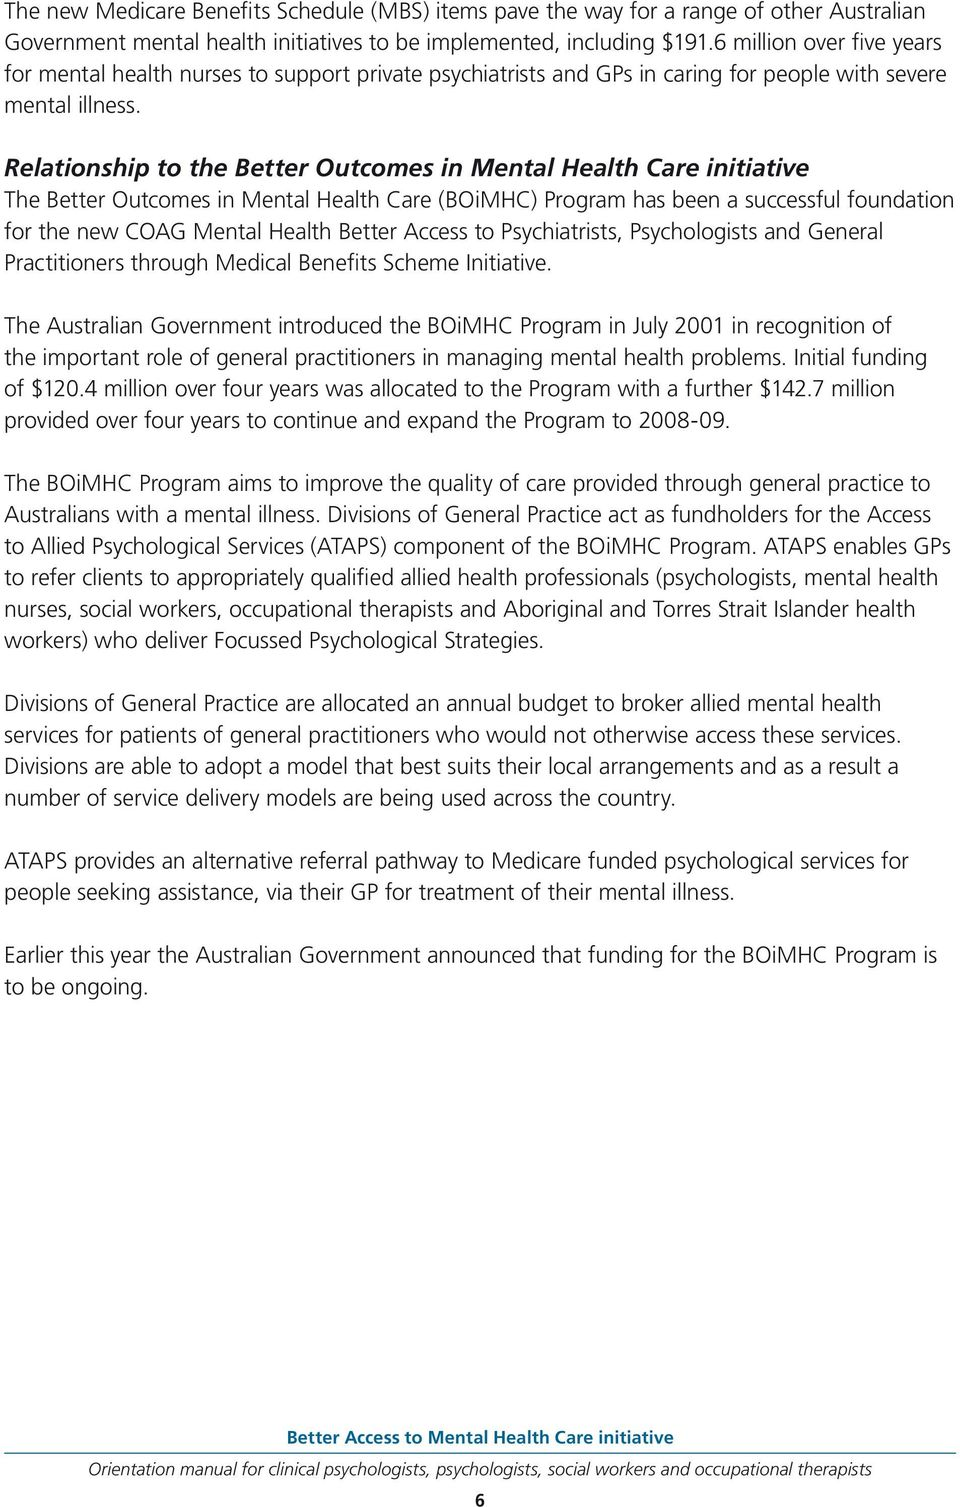 Relationship to the Better Outcomes in Mental Health Care initiative The Better Outcomes in Mental Health Care (BOiMHC) Program has been a successful foundation for the new COAG Mental Health Better